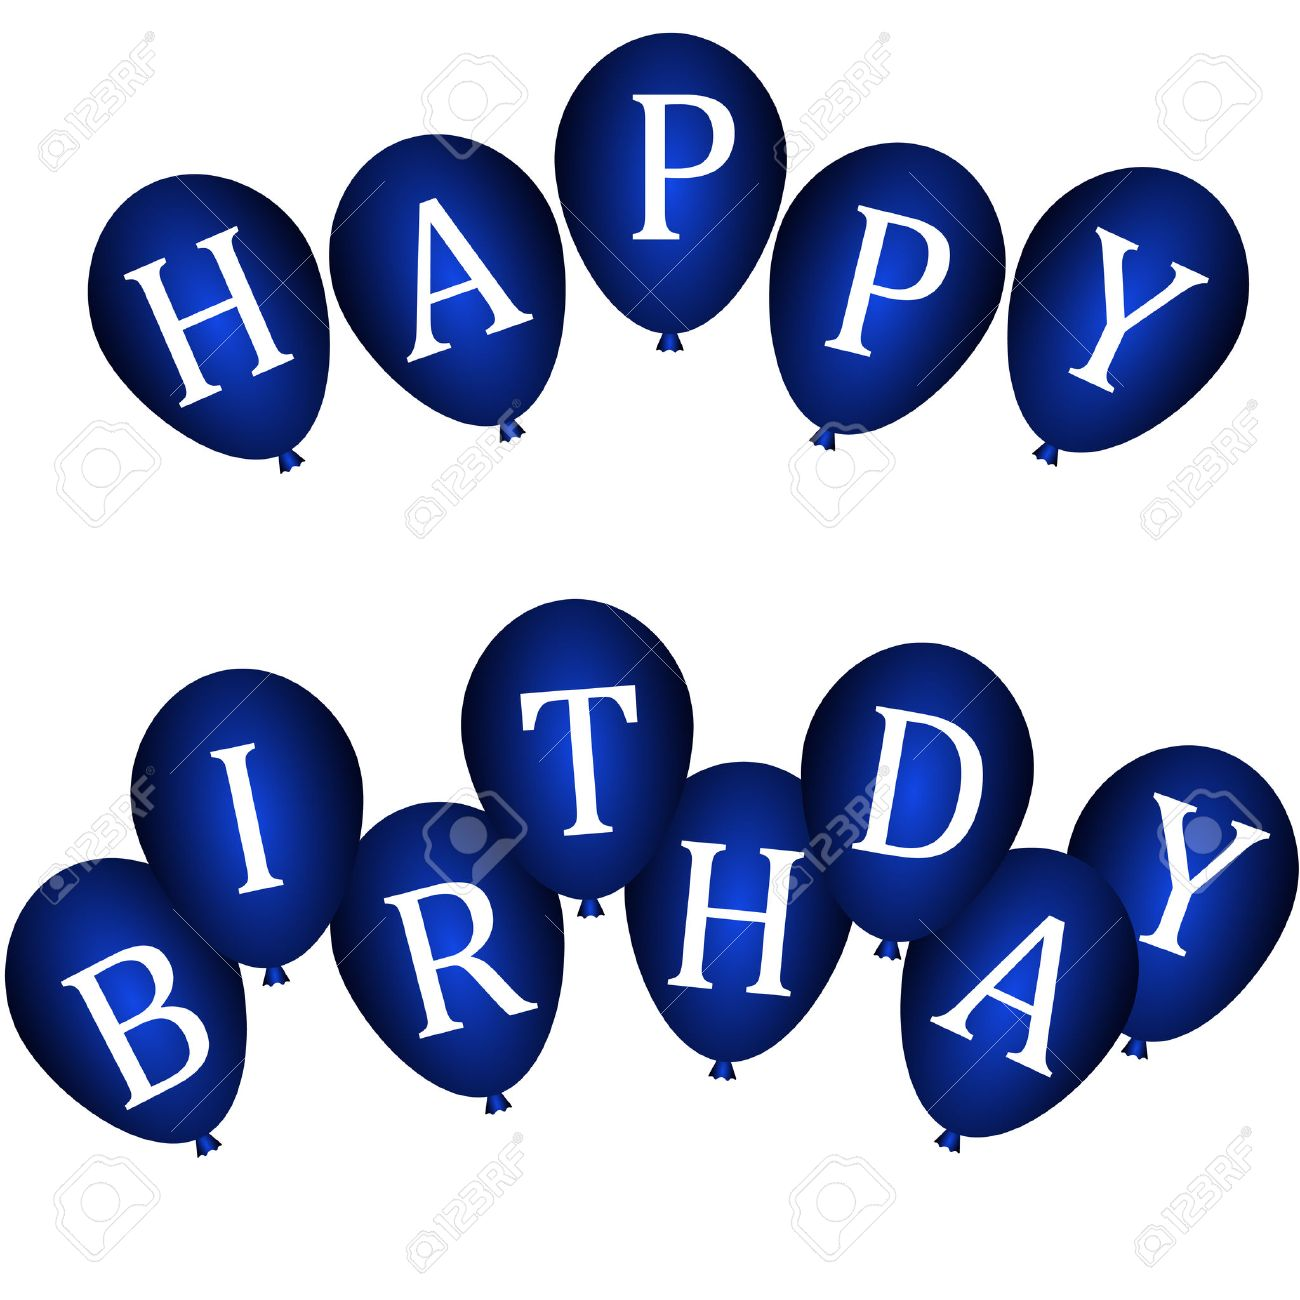 blue happy birthday sign ; 25166166-happy-birthday-banners-with-blue-balloons